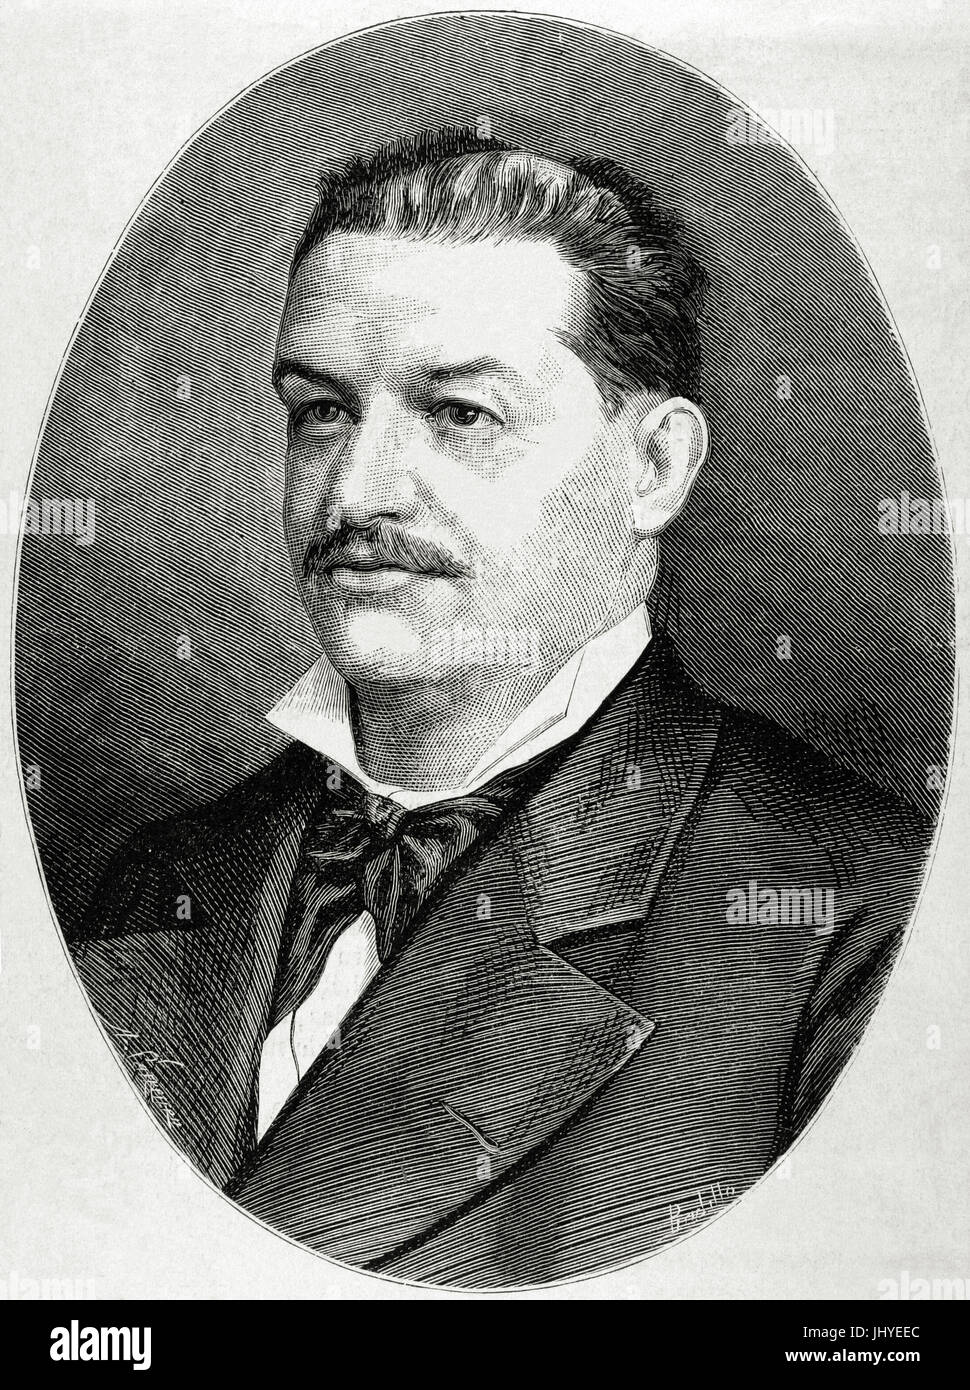 Mariano Vazquez Gomez (1831-1894). Spanish composer and pianist. Engraving by Arturo Carretero (1852-1903) in The - Stock Image